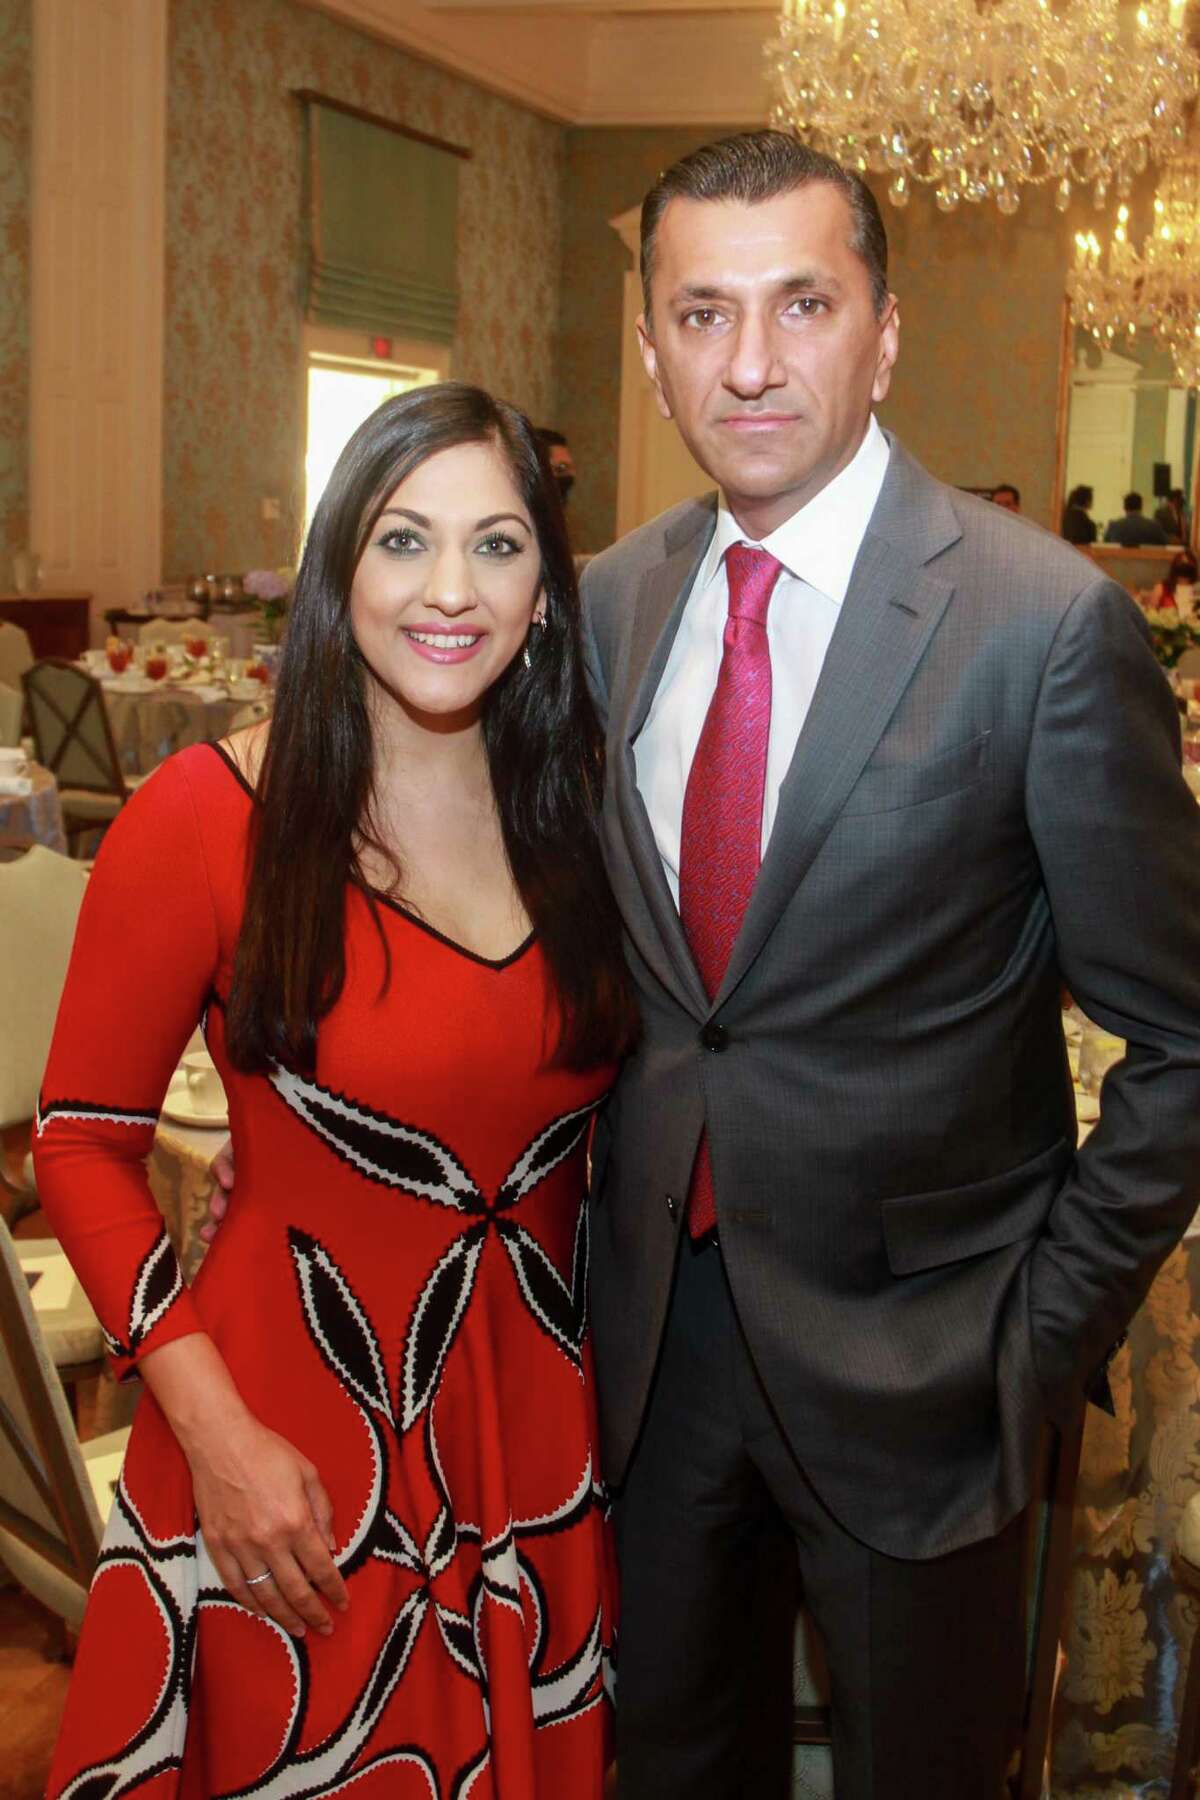 Sippi and Ajay Khurana at the KnowAutism Luncheon in Houston on April 8, 2021.